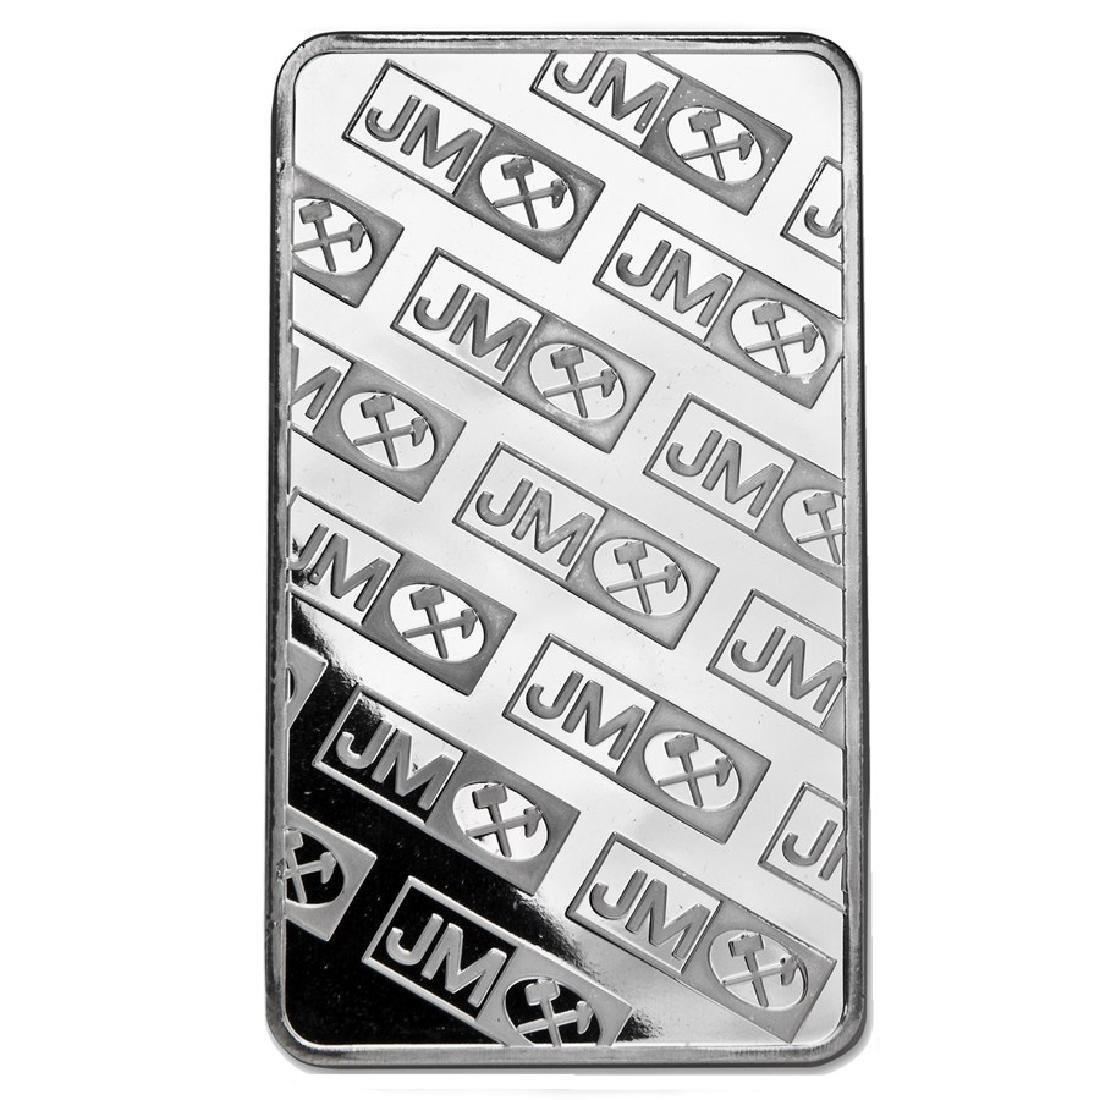 Genuine 10 oz 0.999 Fine Silver Bar - Johnson Matthey - 2